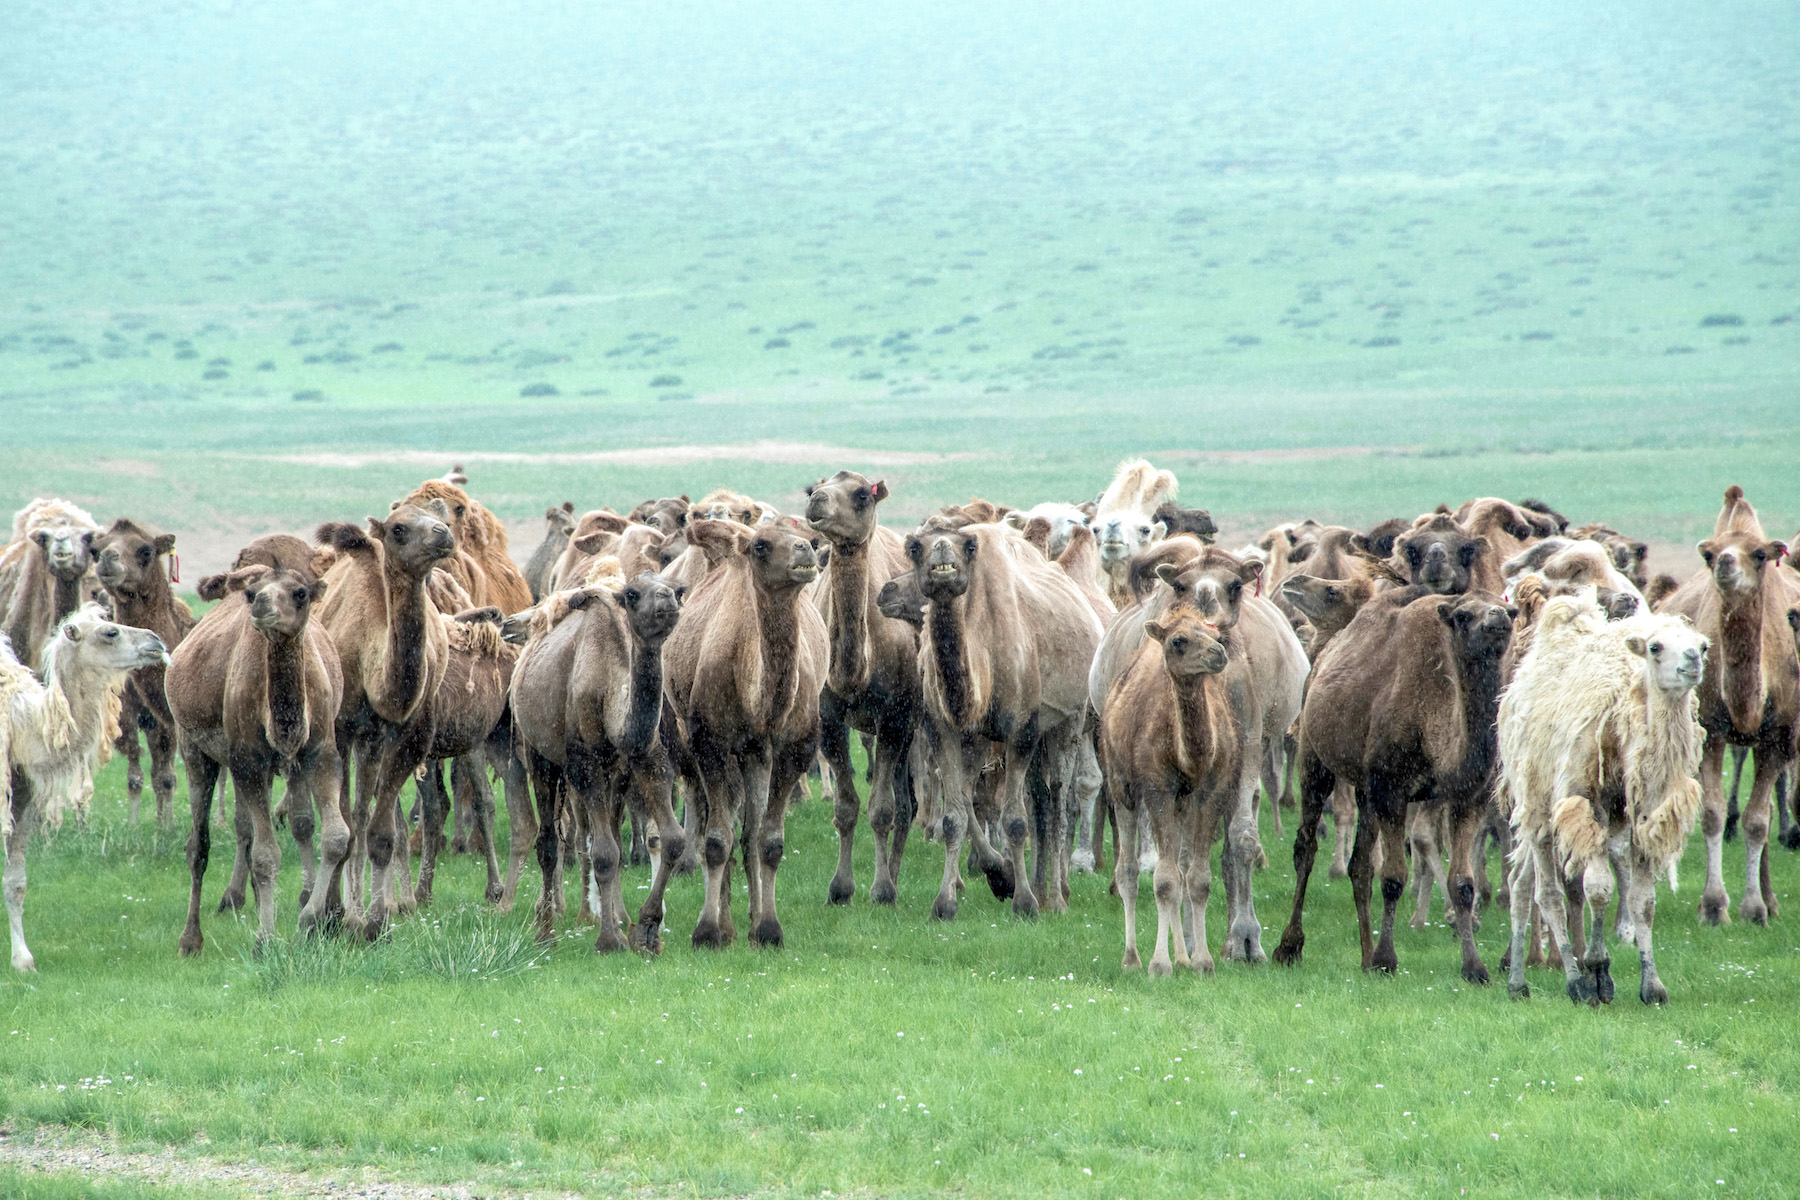 Camels in the Mongolian Gobi